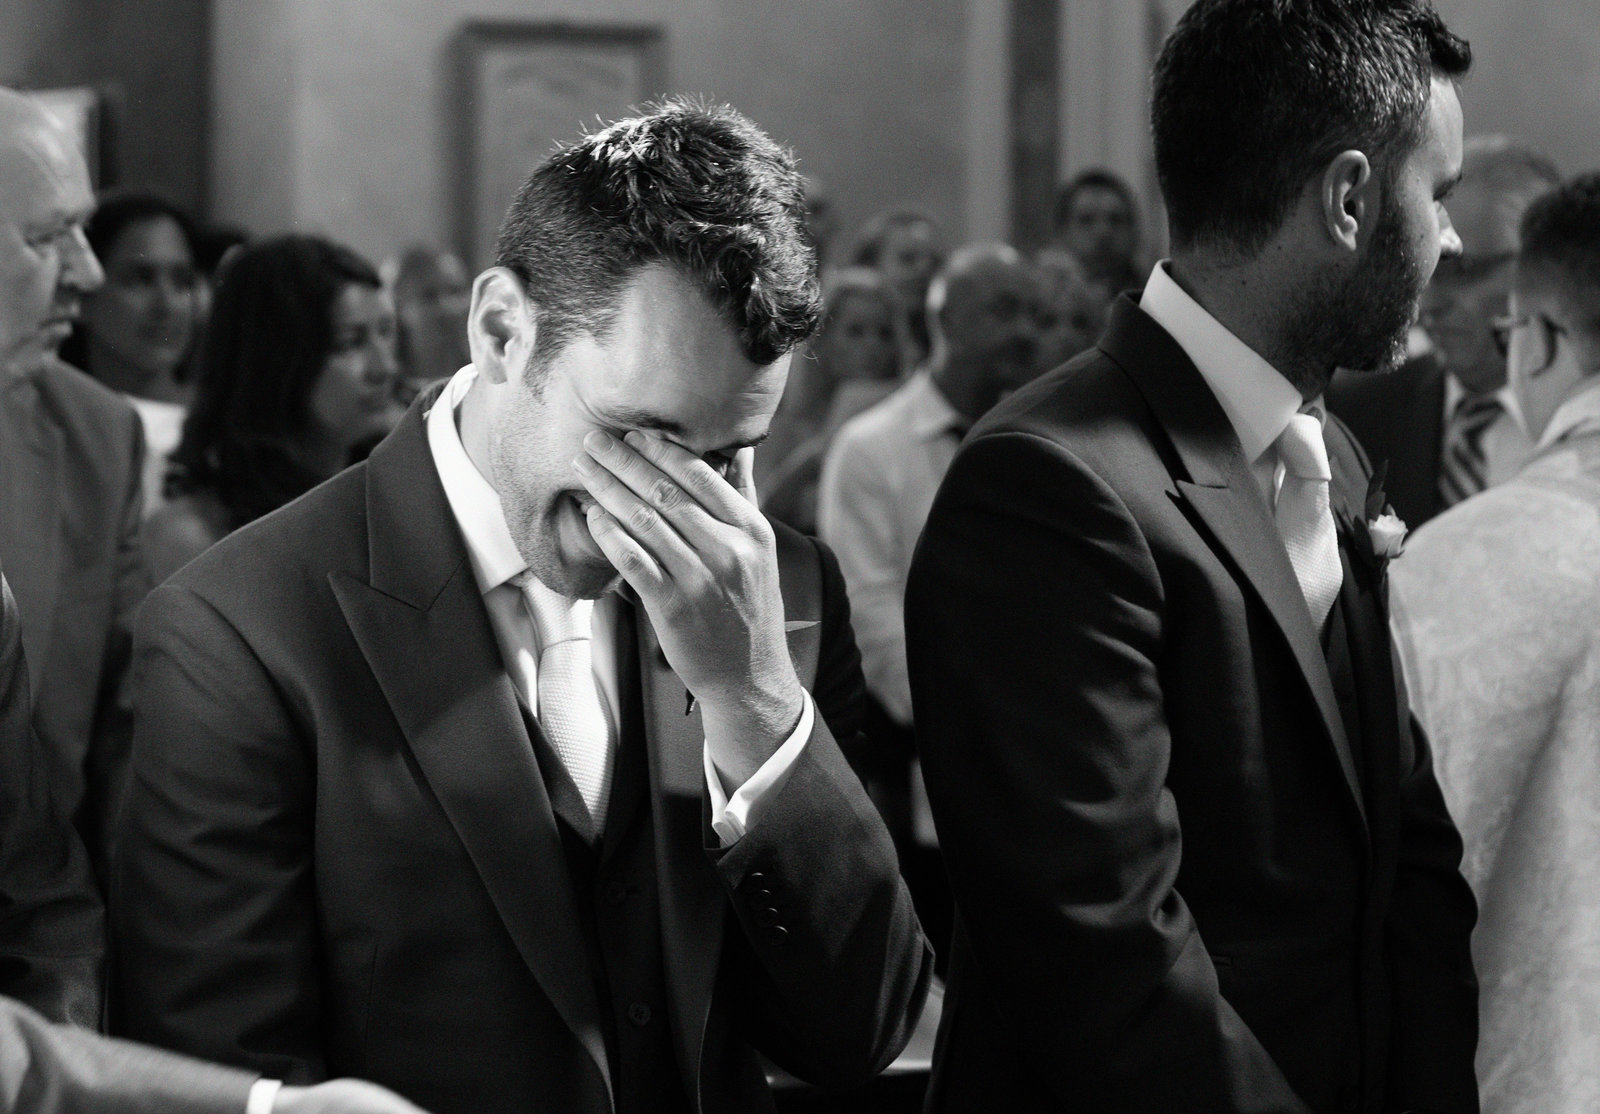 Excellent black and white documentary wedding photo by Adorlee of the best man cracking up into laughter during the ceremony at this destination Church wedding in Tuscany, Italy